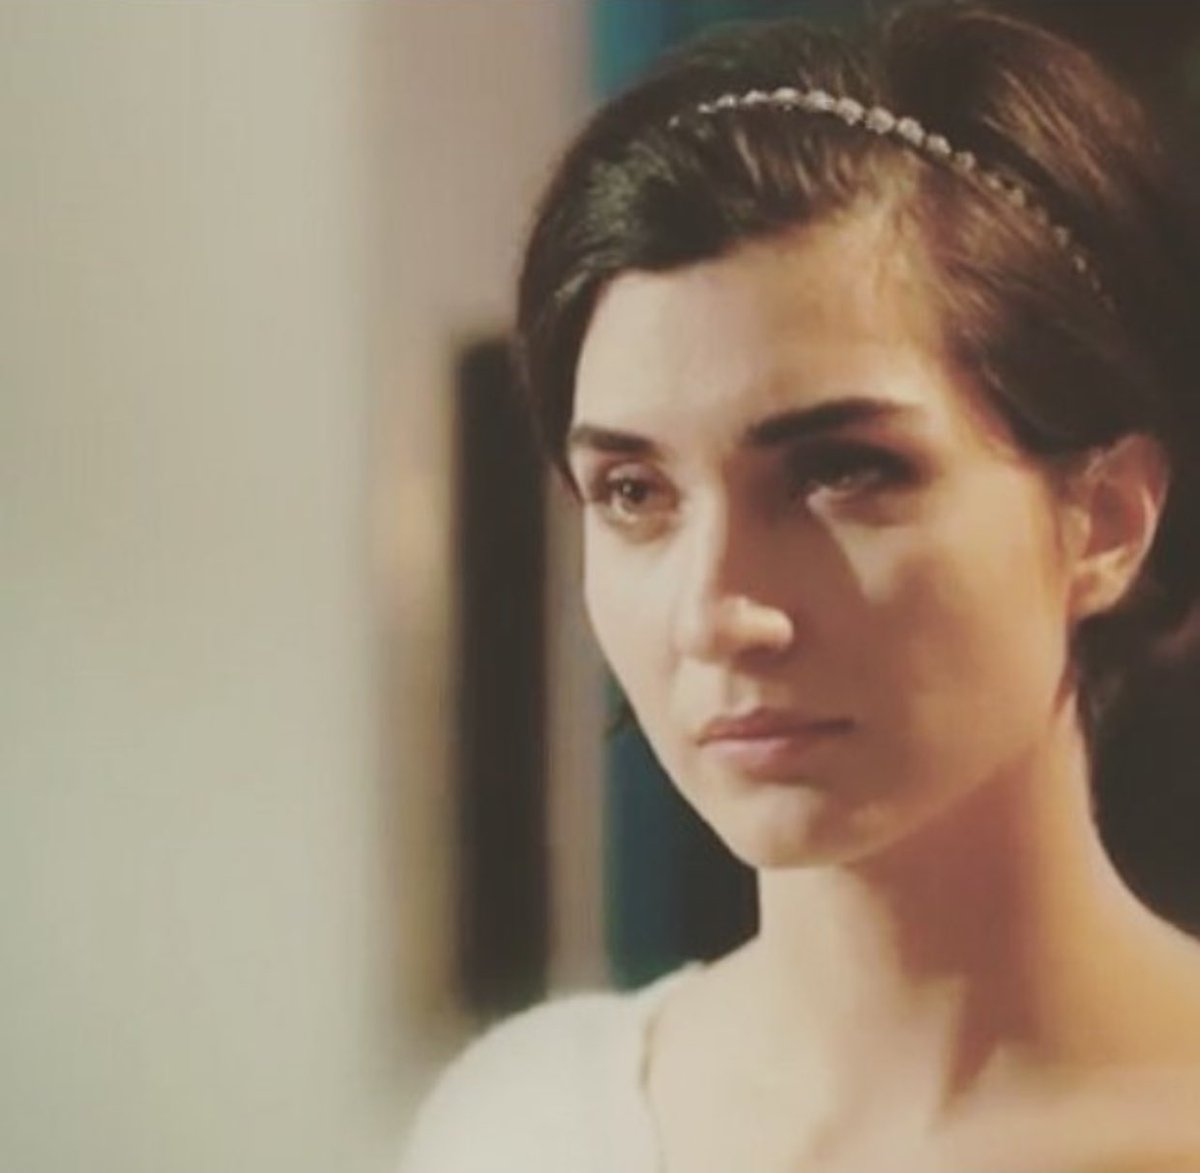 #zamanıgeldi Tuba for me is superb in acting. You can really see in her eyes the emotions that he want to convey.. <br>http://pic.twitter.com/P0siJlVMRY